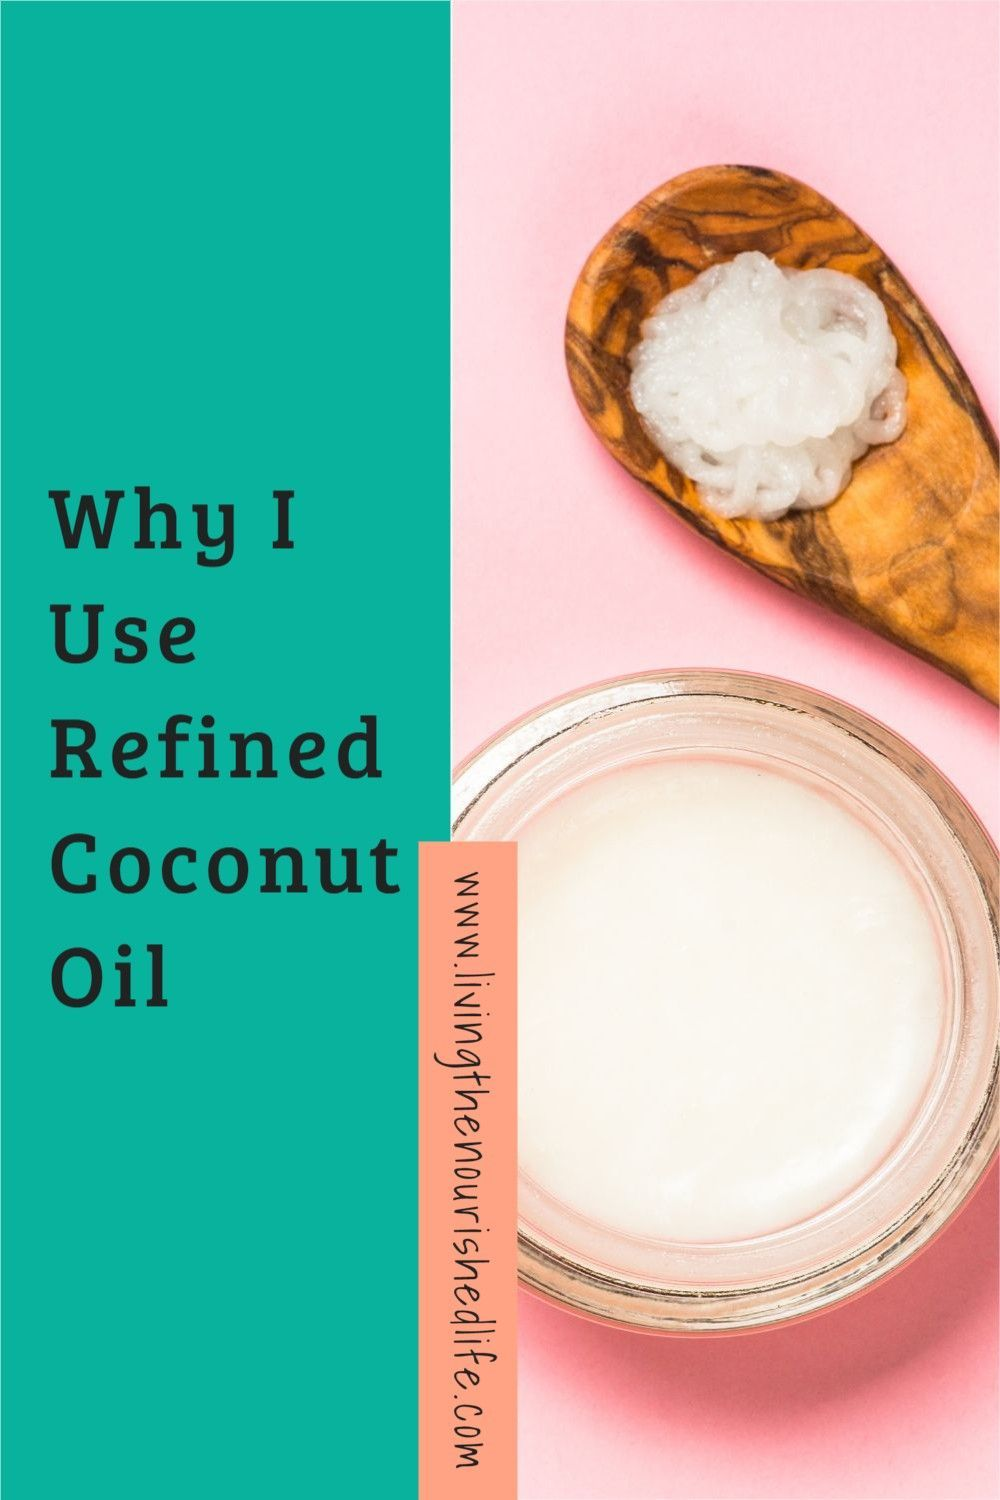 Why I Use Refined Vs Unrefined Coconut Oil The Nourished Life Whole Food Recipes Unrefined Coconut Oil Refined Coconut Oil